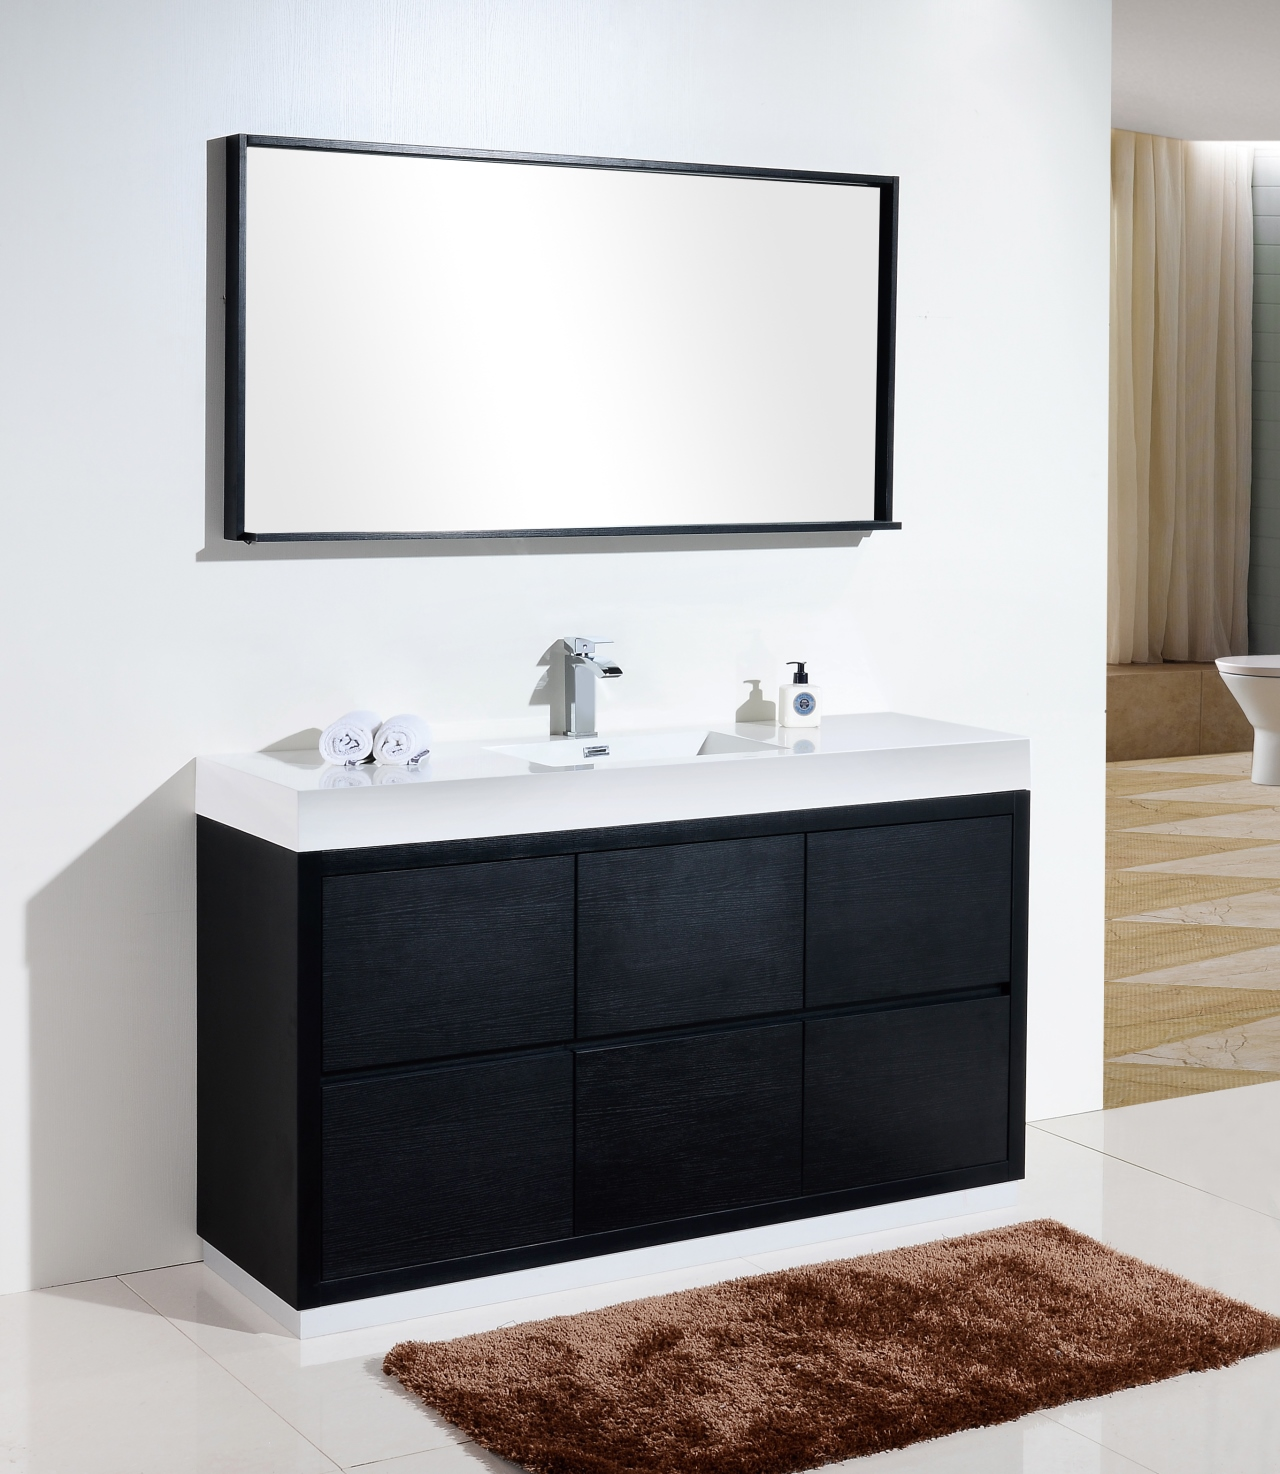 Bliss 60 Single Sink Black Free Standing Modern Bathroom Vanity